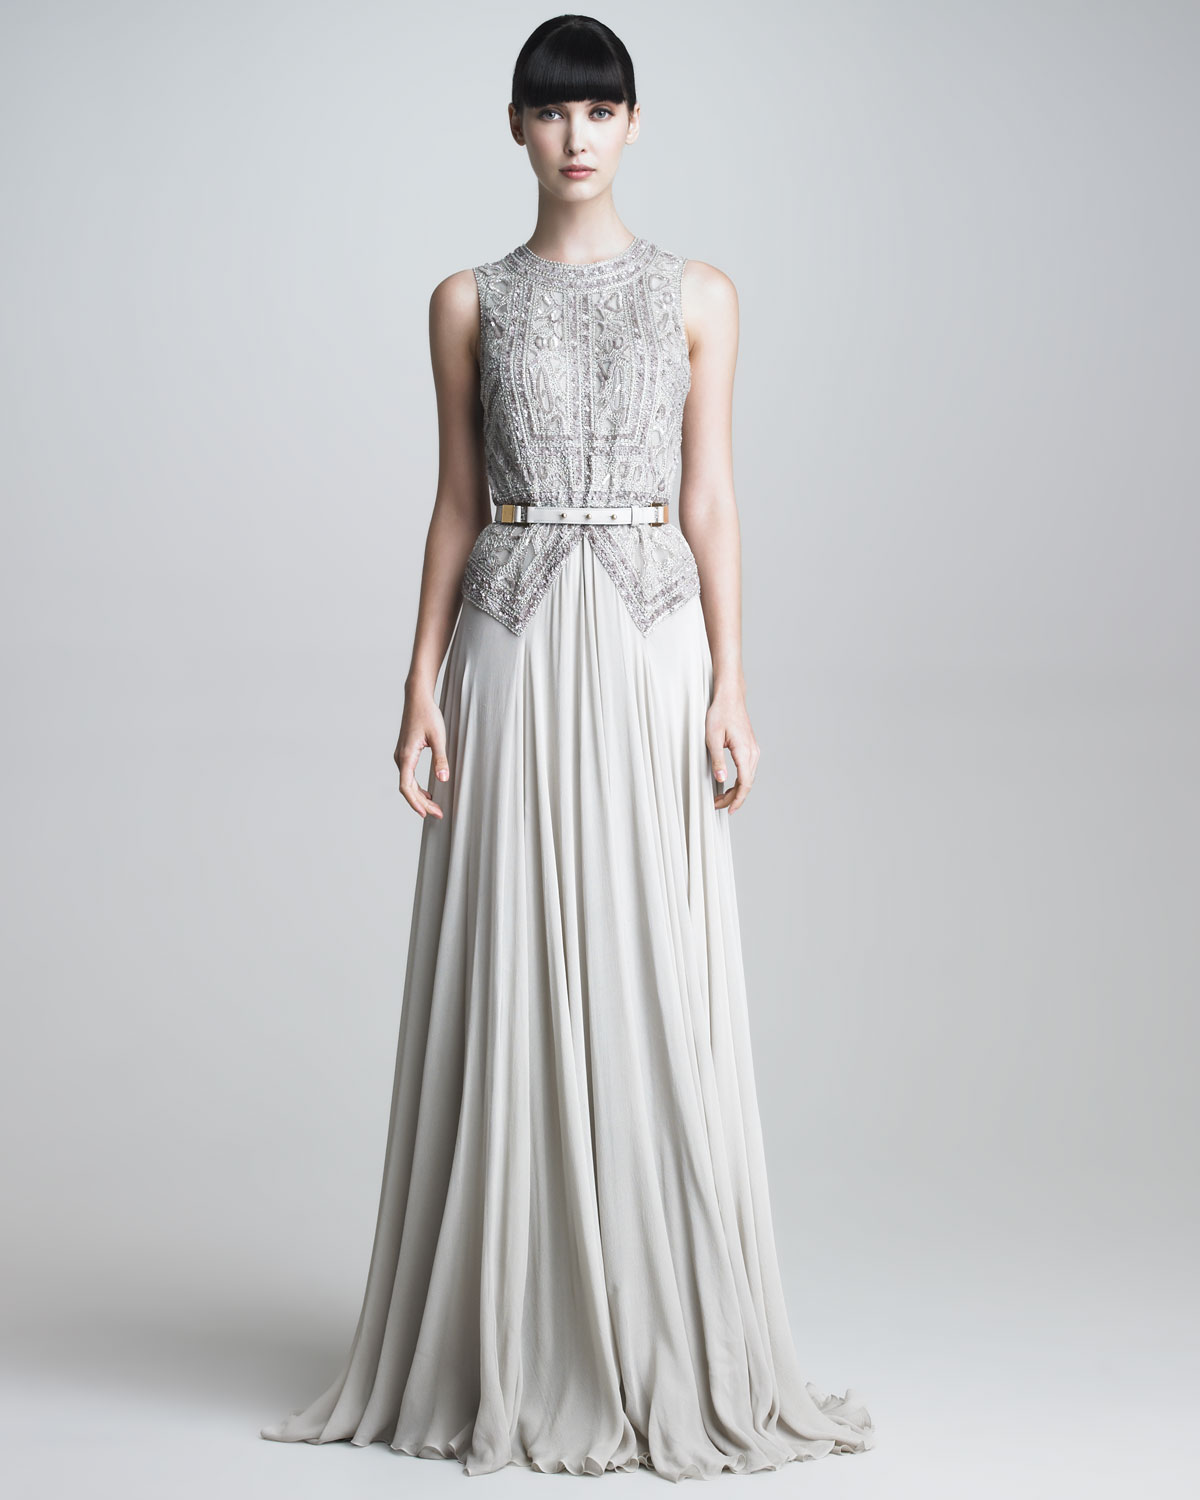 Lyst - Elie saab Beaded Bodice Gown in Gray